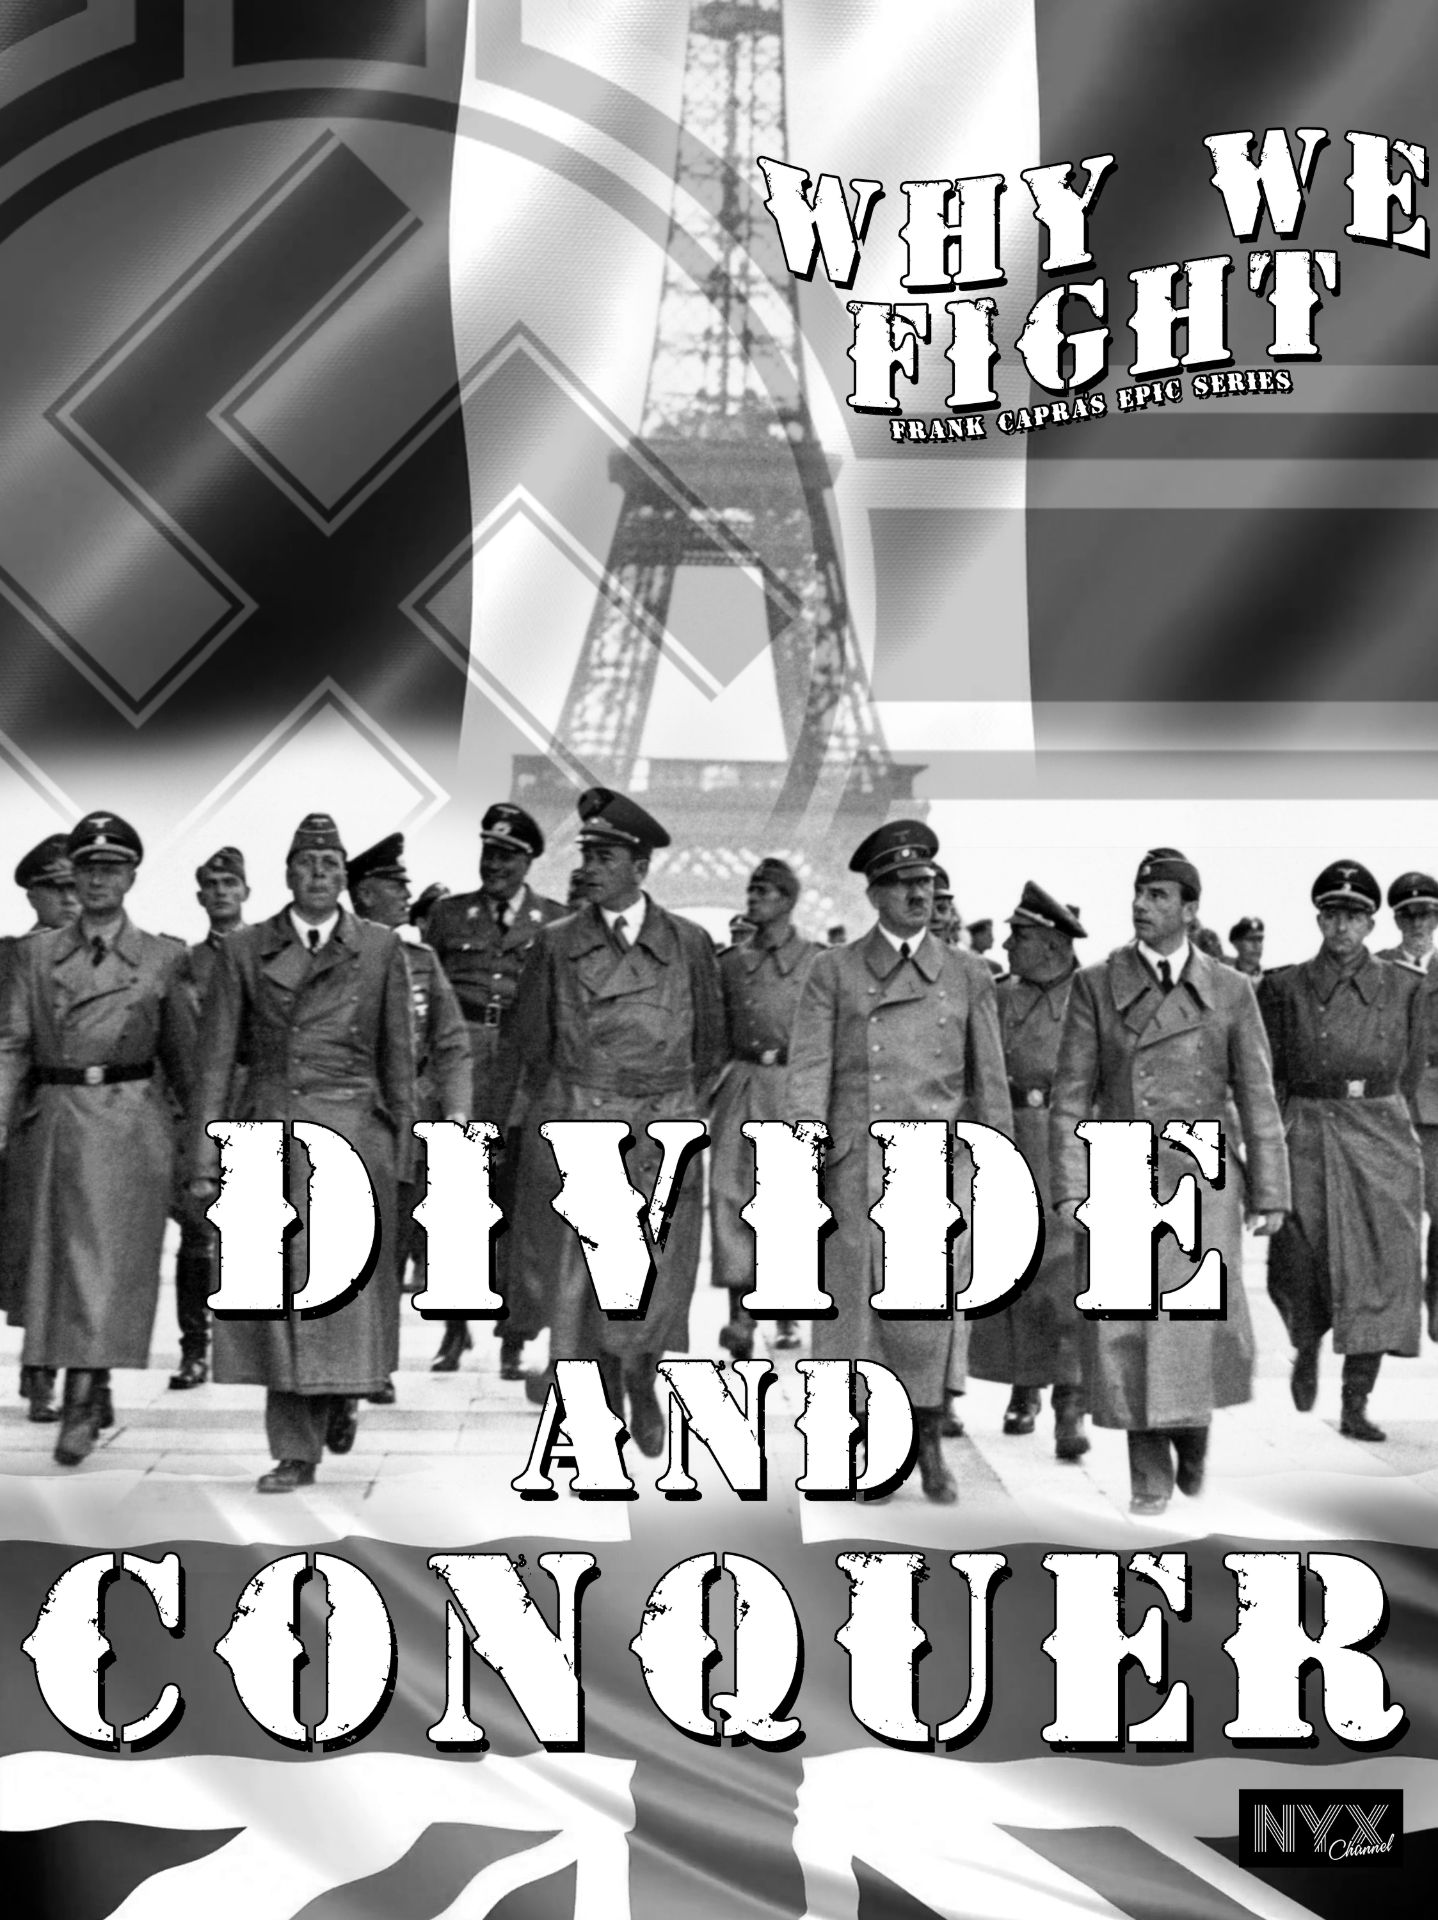 Why We Fight (1942) Documentary – Divide and Conquer